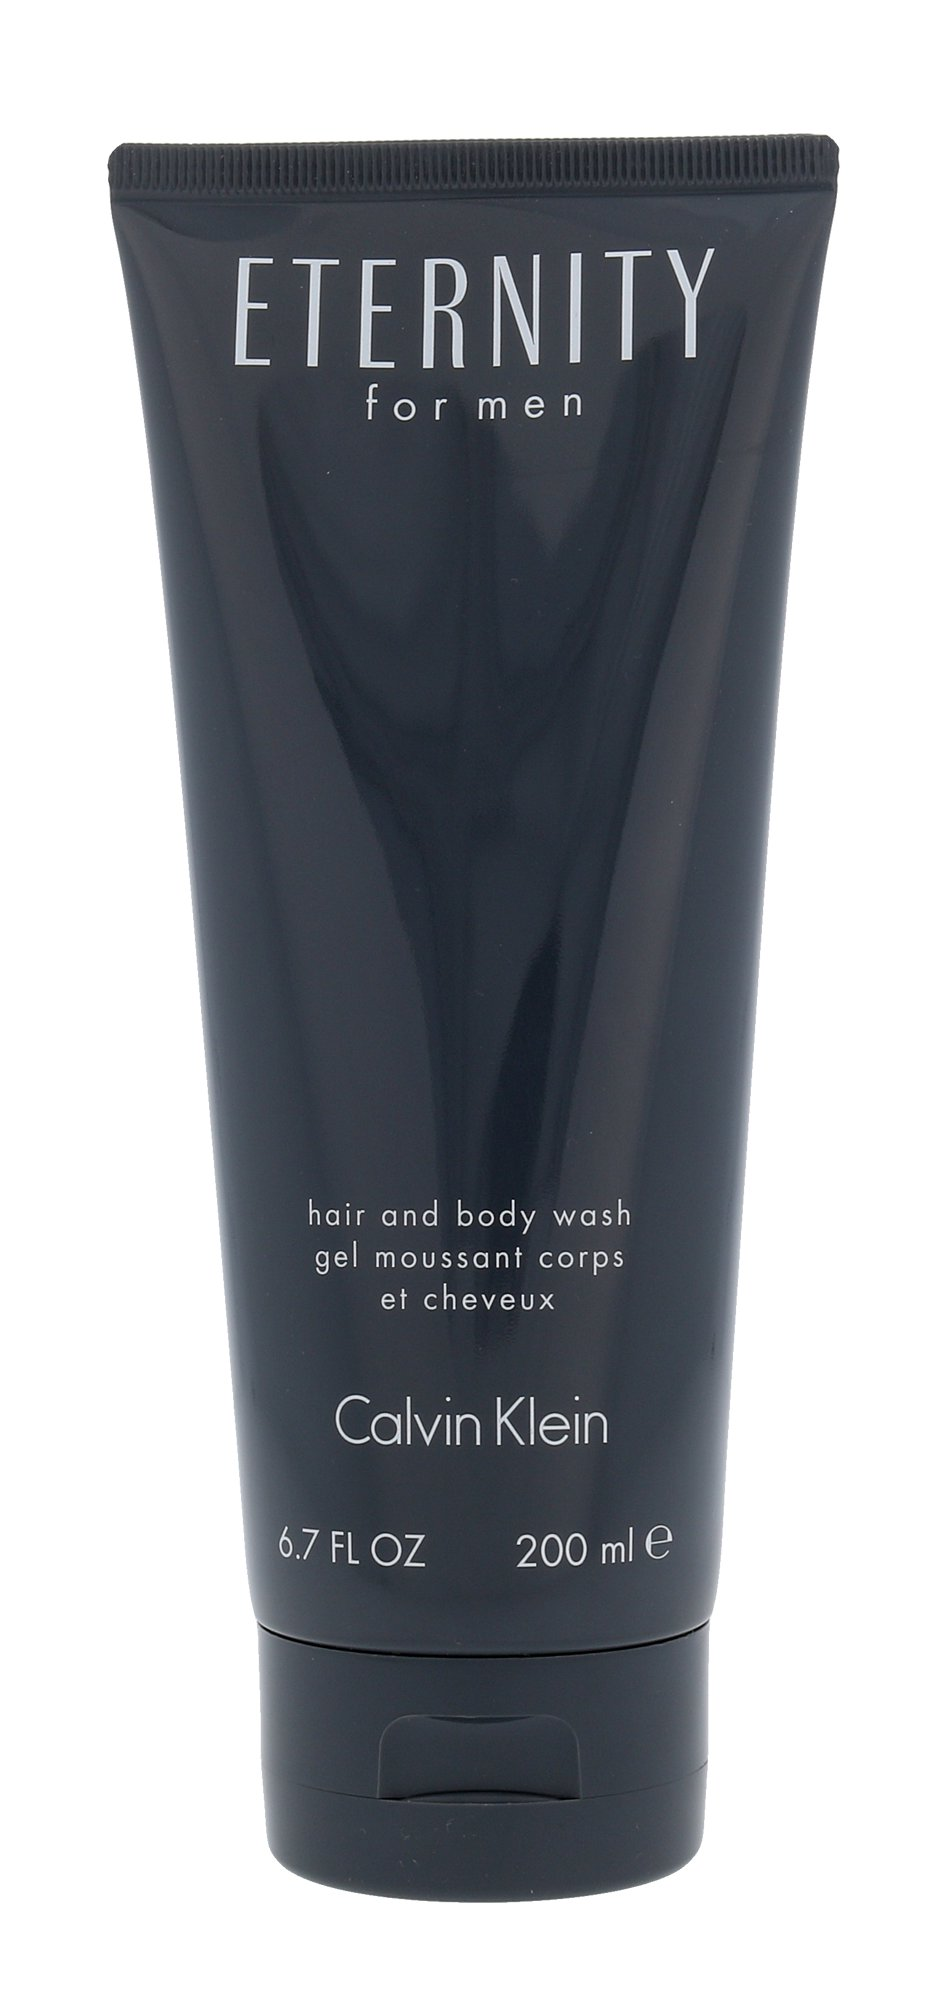 Calvin Klein Eternity, Sprchovací gél 200ml - For Men